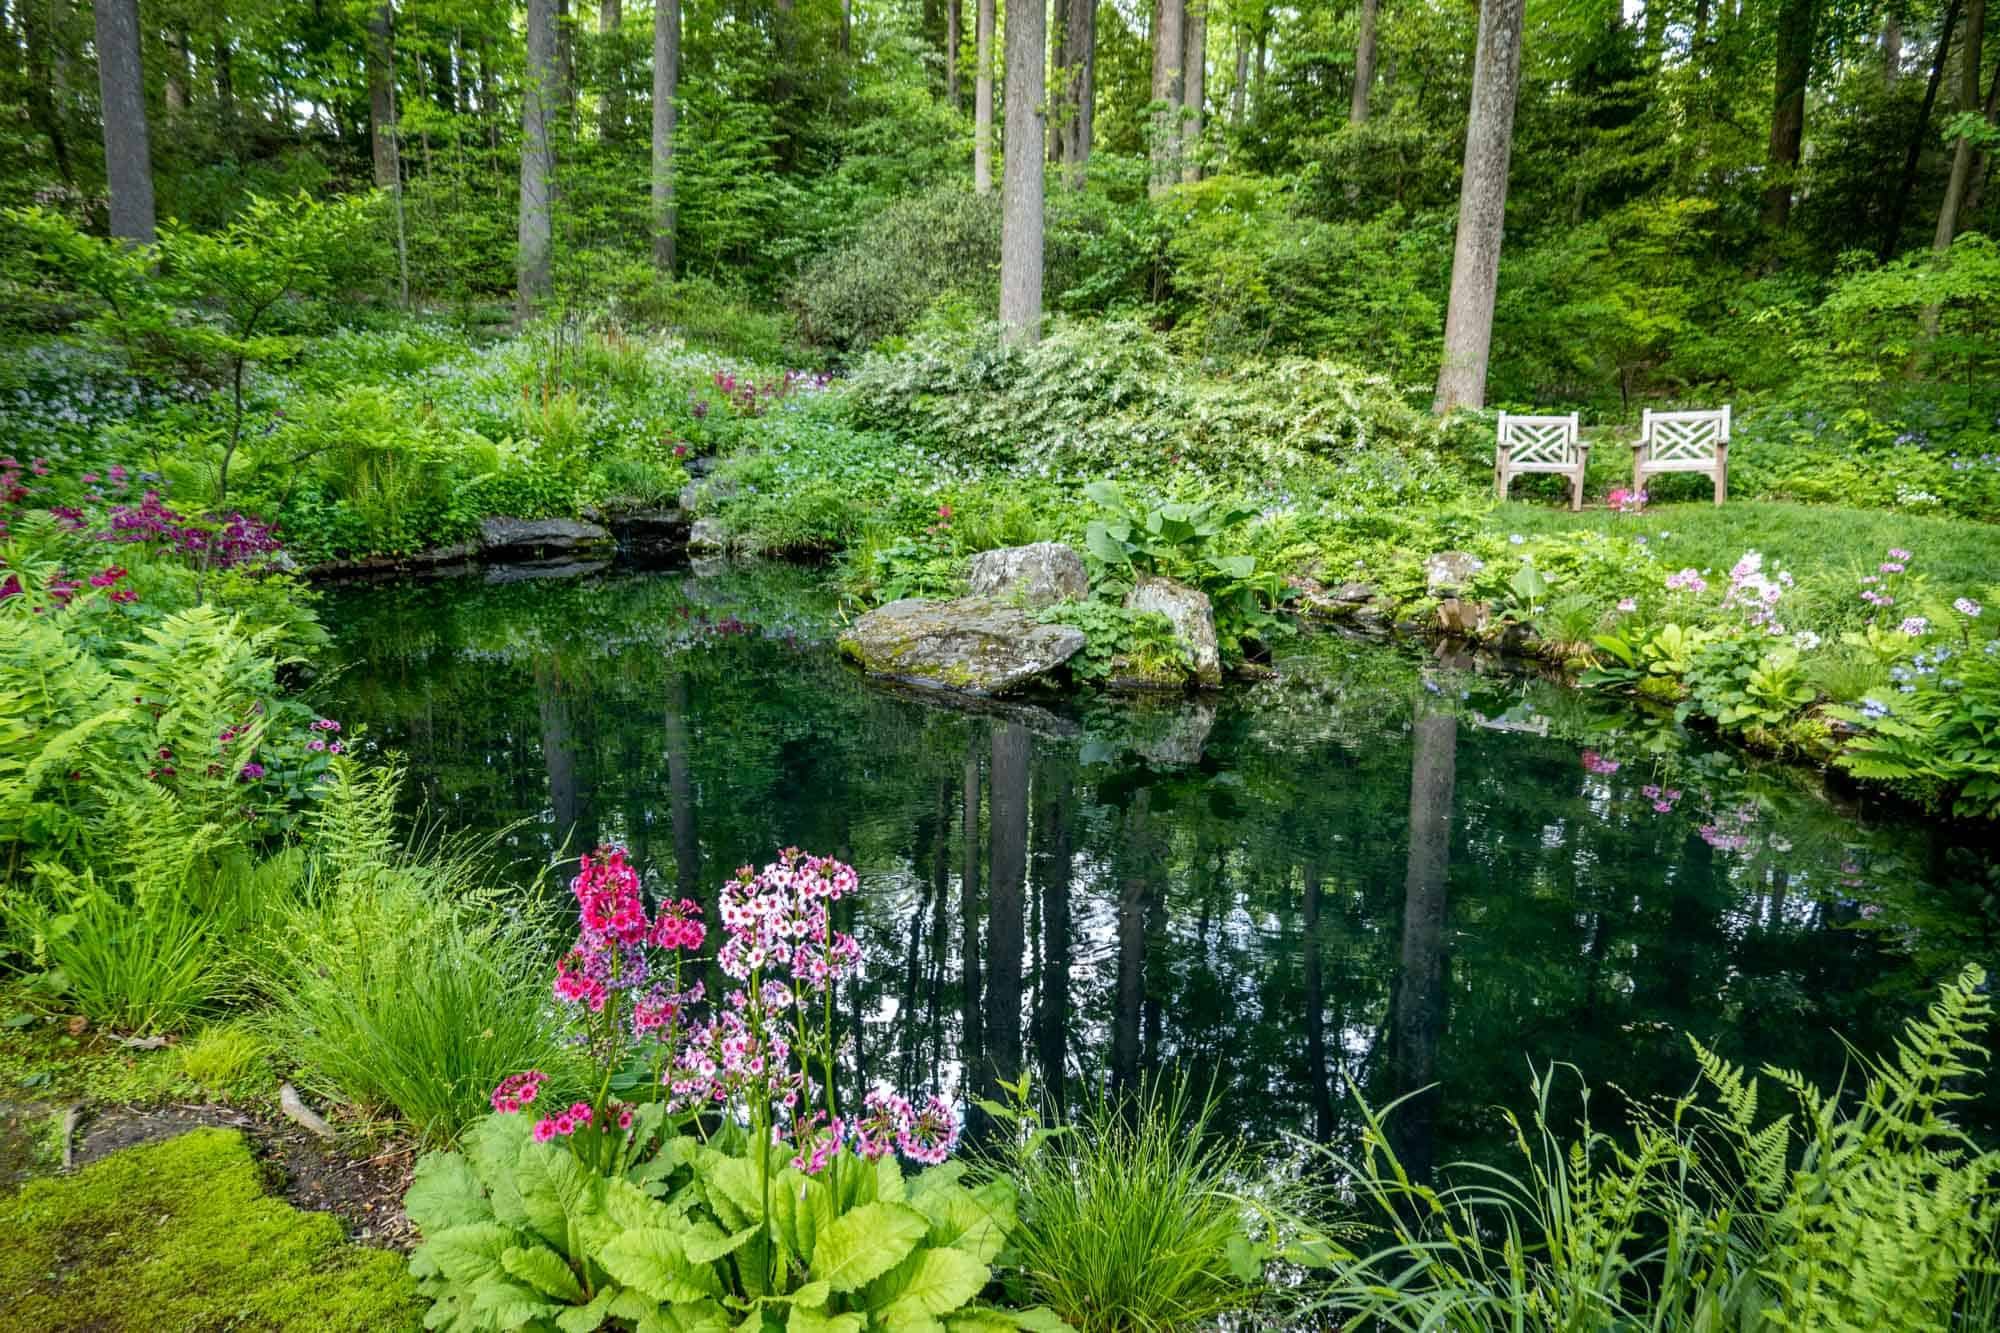 Two chairs beside a pond surrounded by green plants and flowers